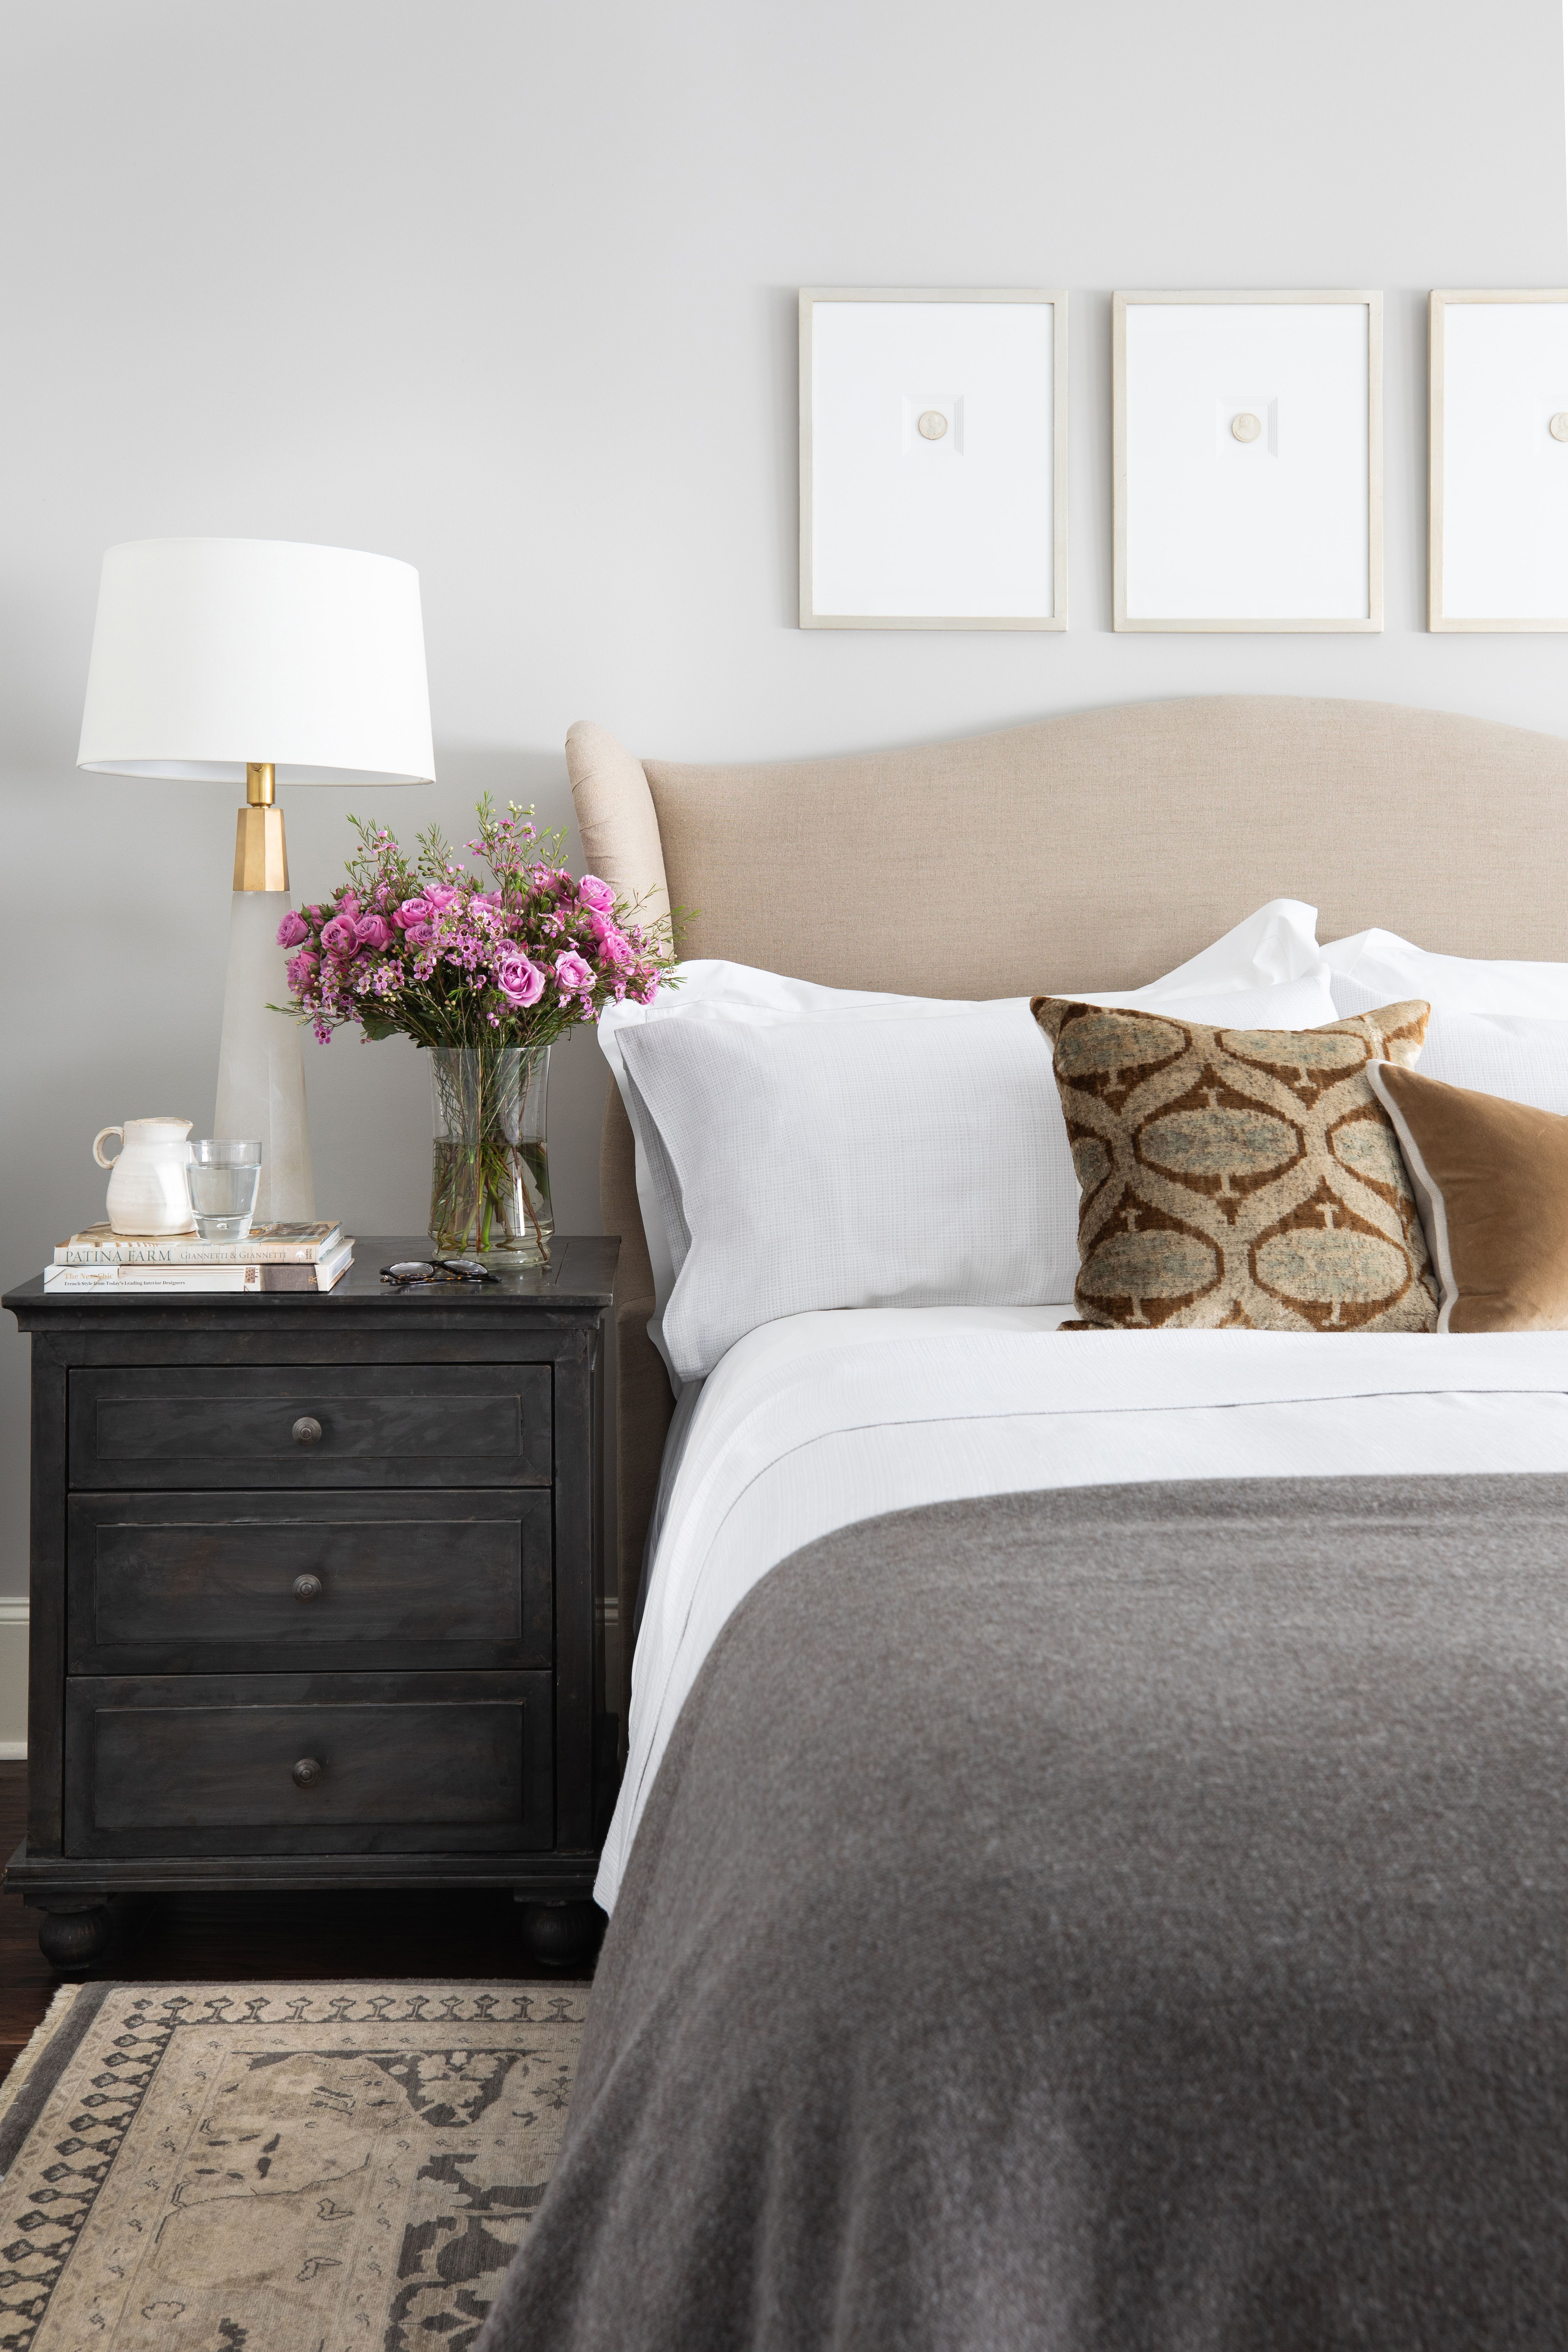 Why I Cant Get Enough of Neutral Bedrooms